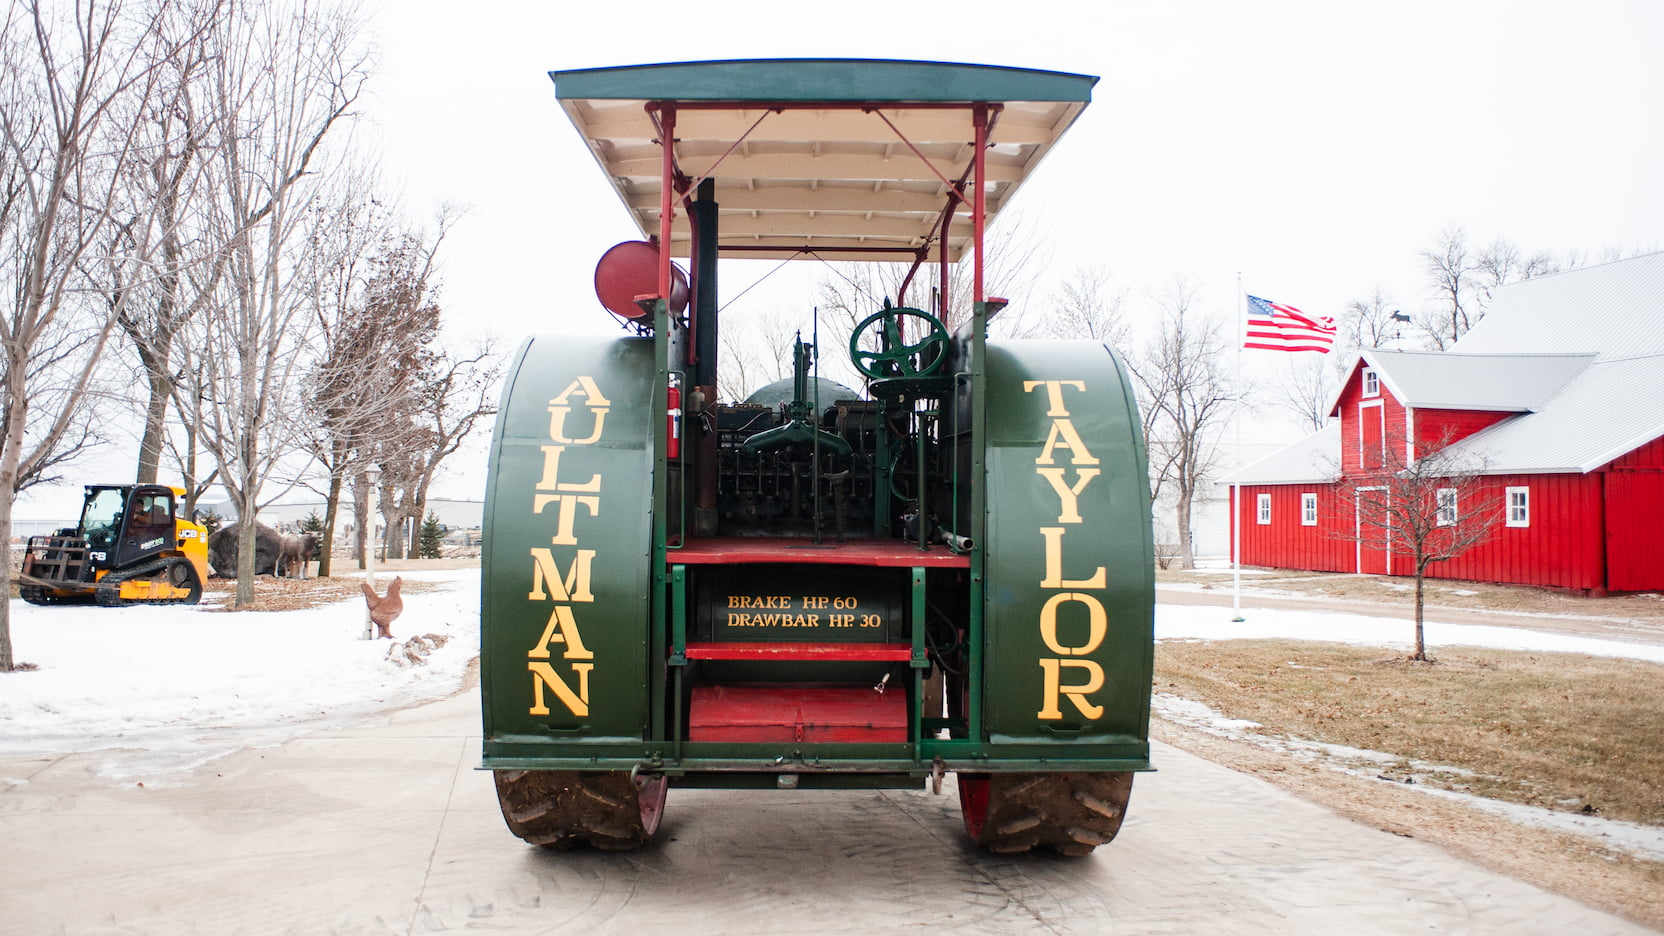 Aultman and Taylor 30-60 tractor